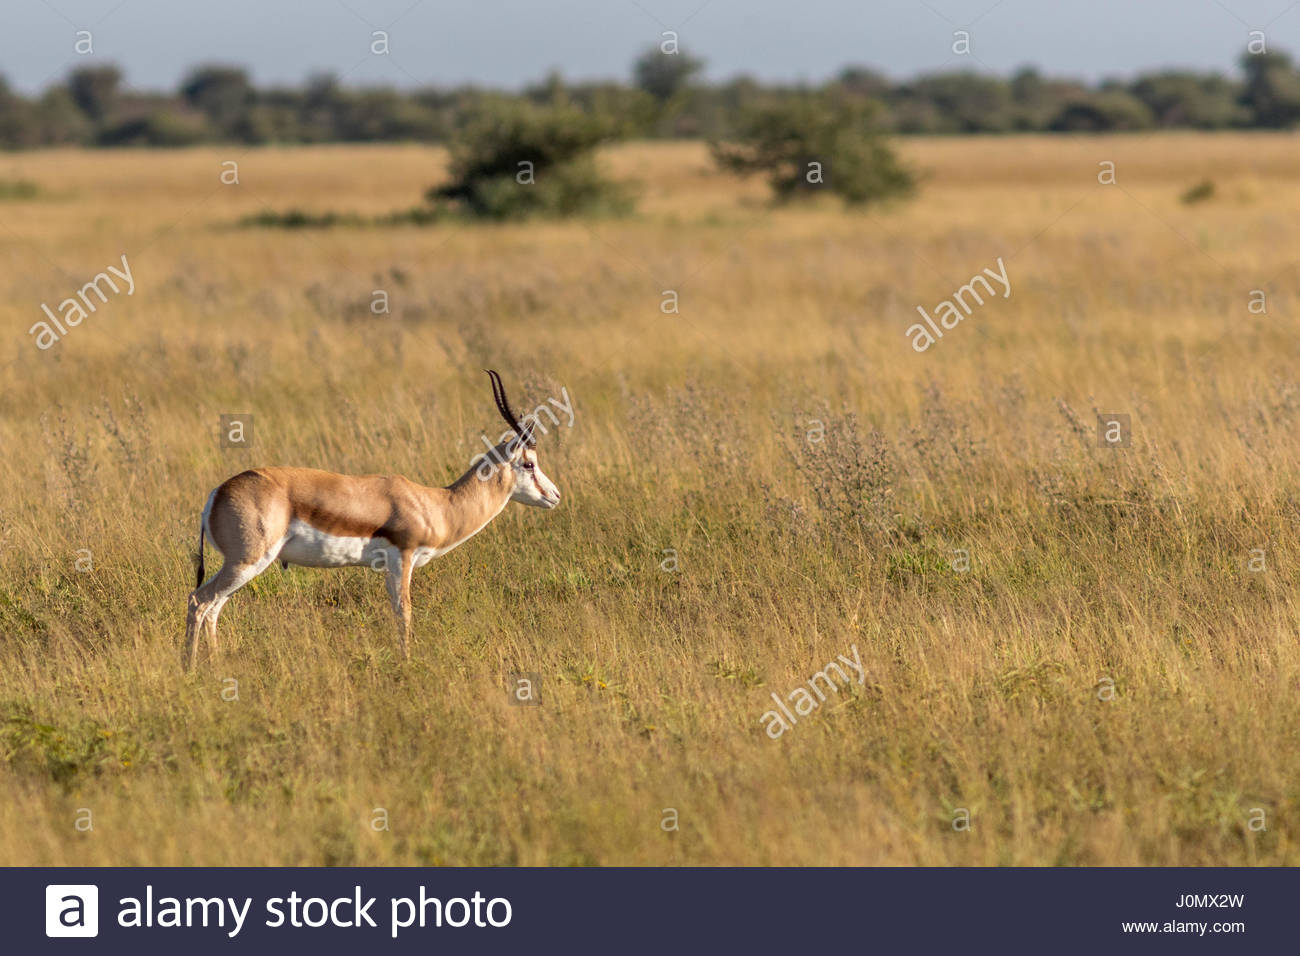 A lone male Springbok grazing in the Nxai Pans National Park, Botswana - Stock Image